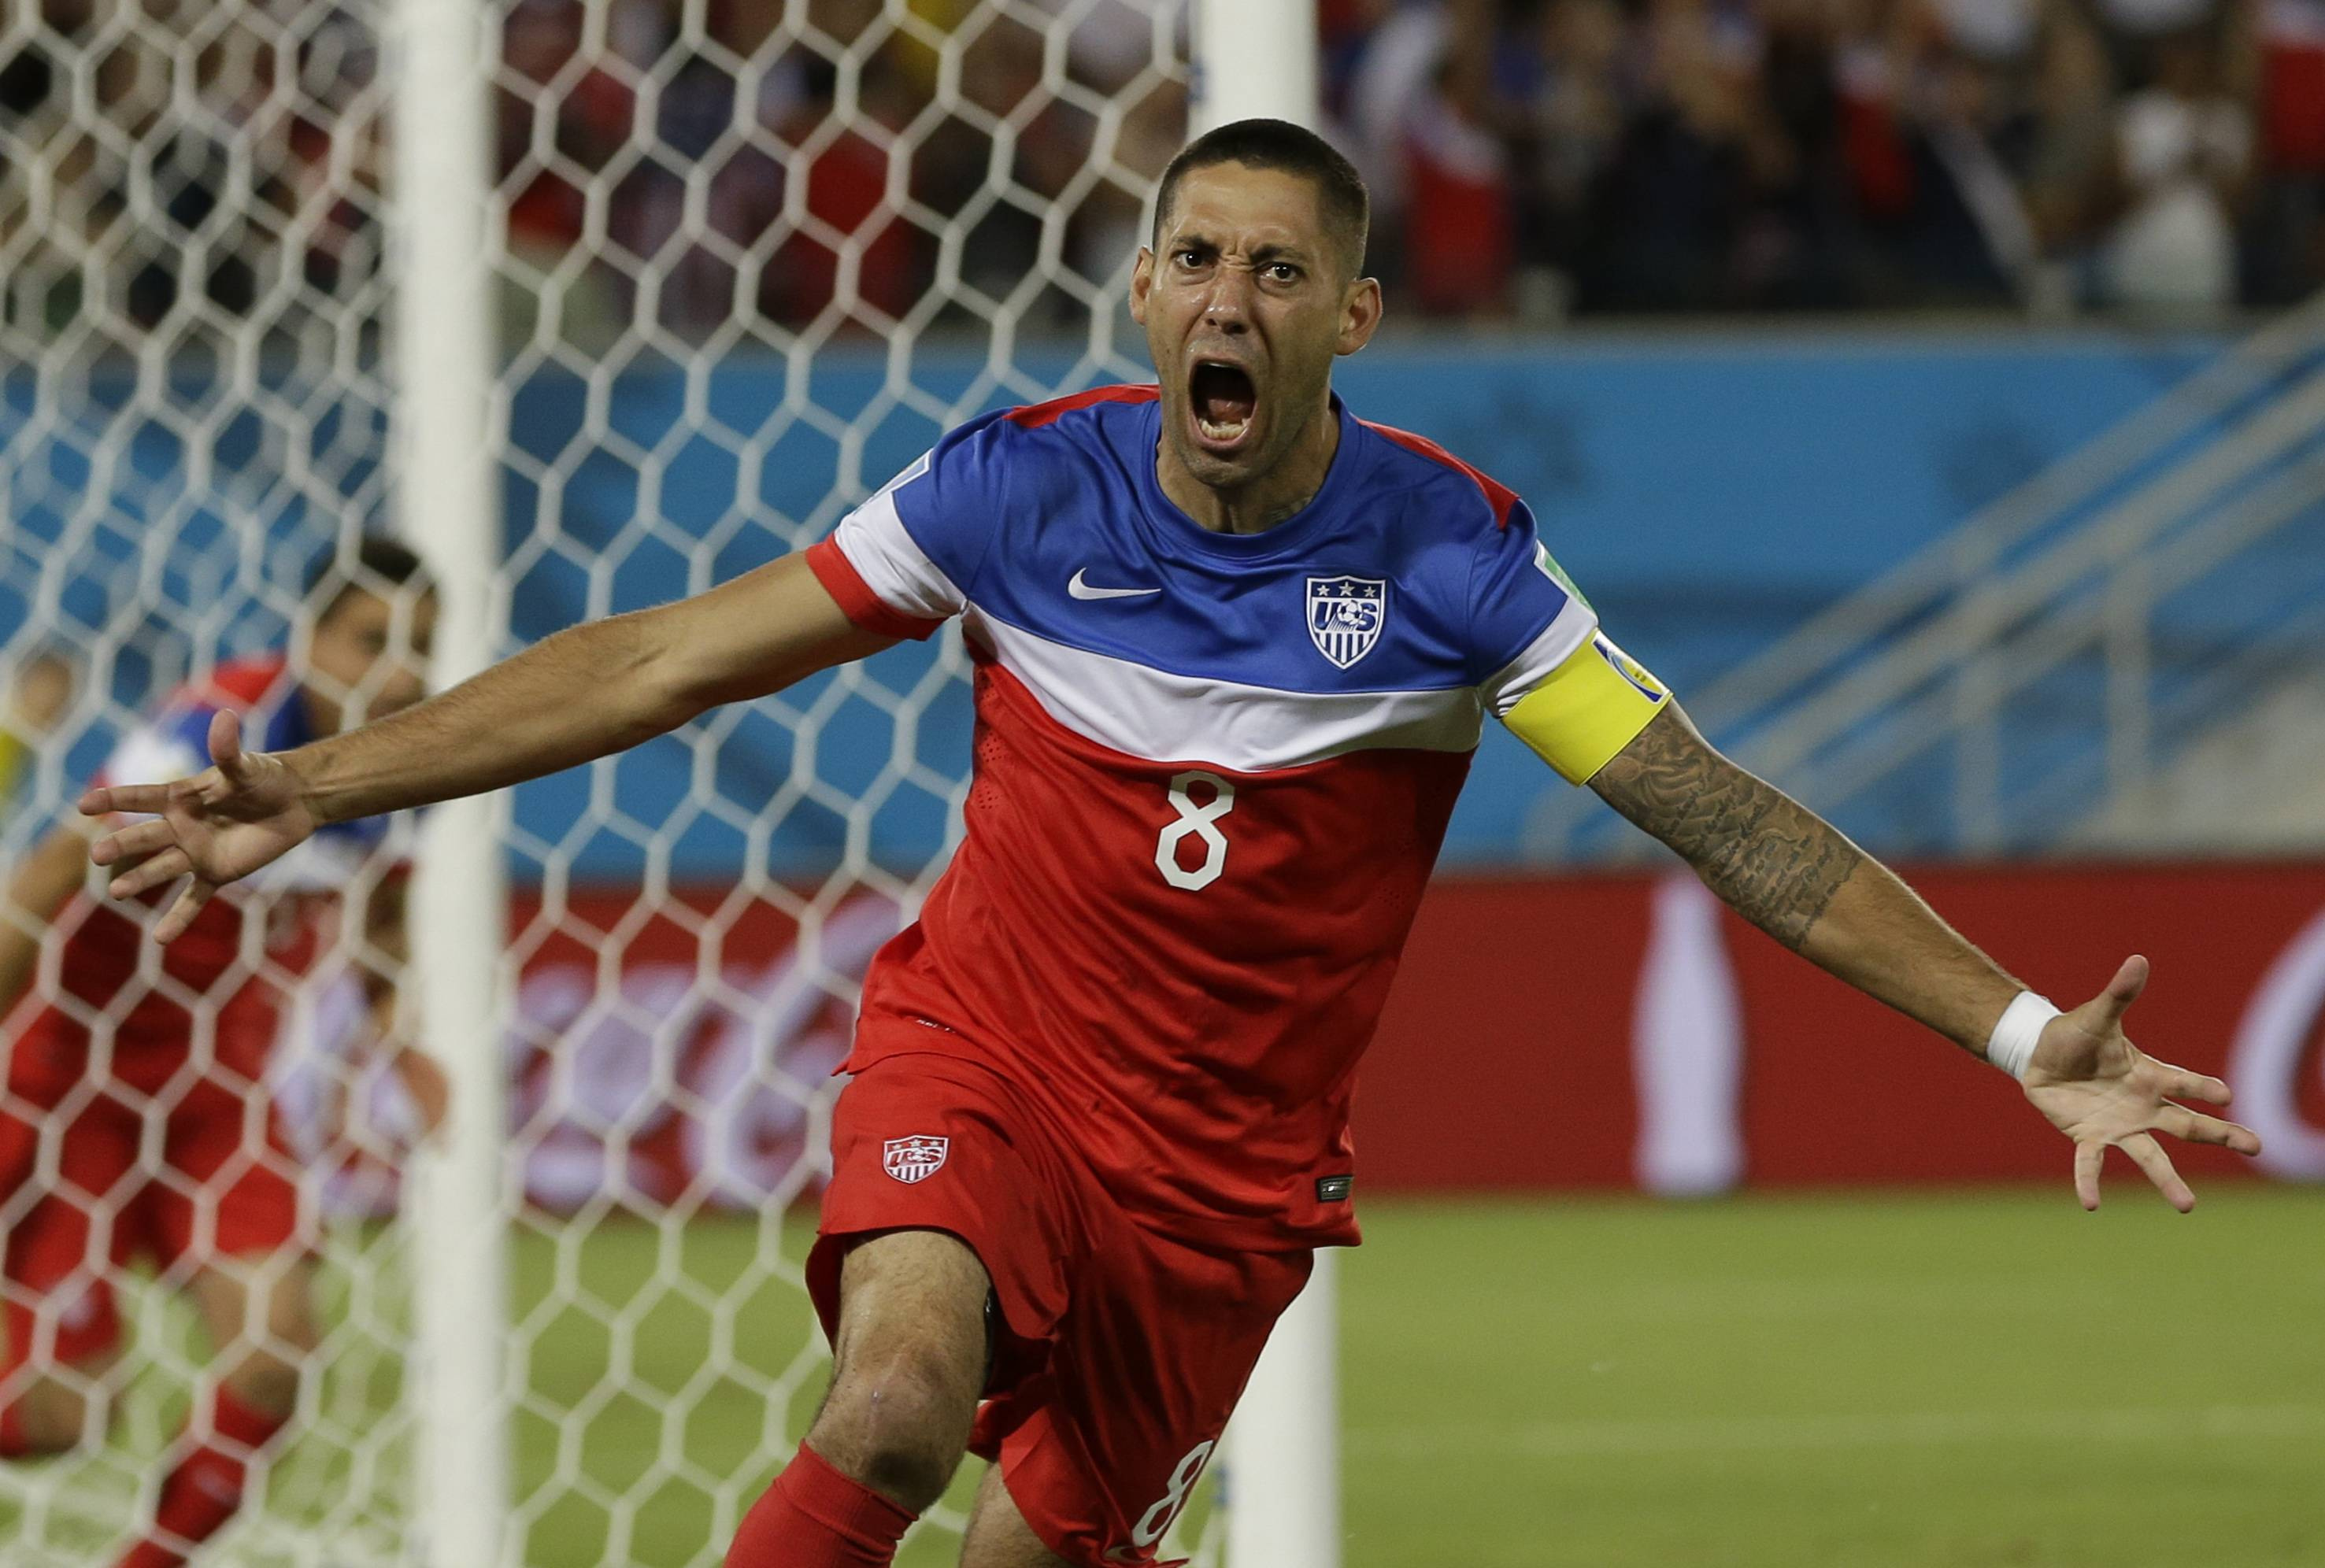 United States' Clint Dempsey celebrates after scoring the opening goal — just 32 seconds into the match — during the group G World Cup soccer match between Ghana and the United States at the Arena das Dunas in Natal, Brazil, Monday.